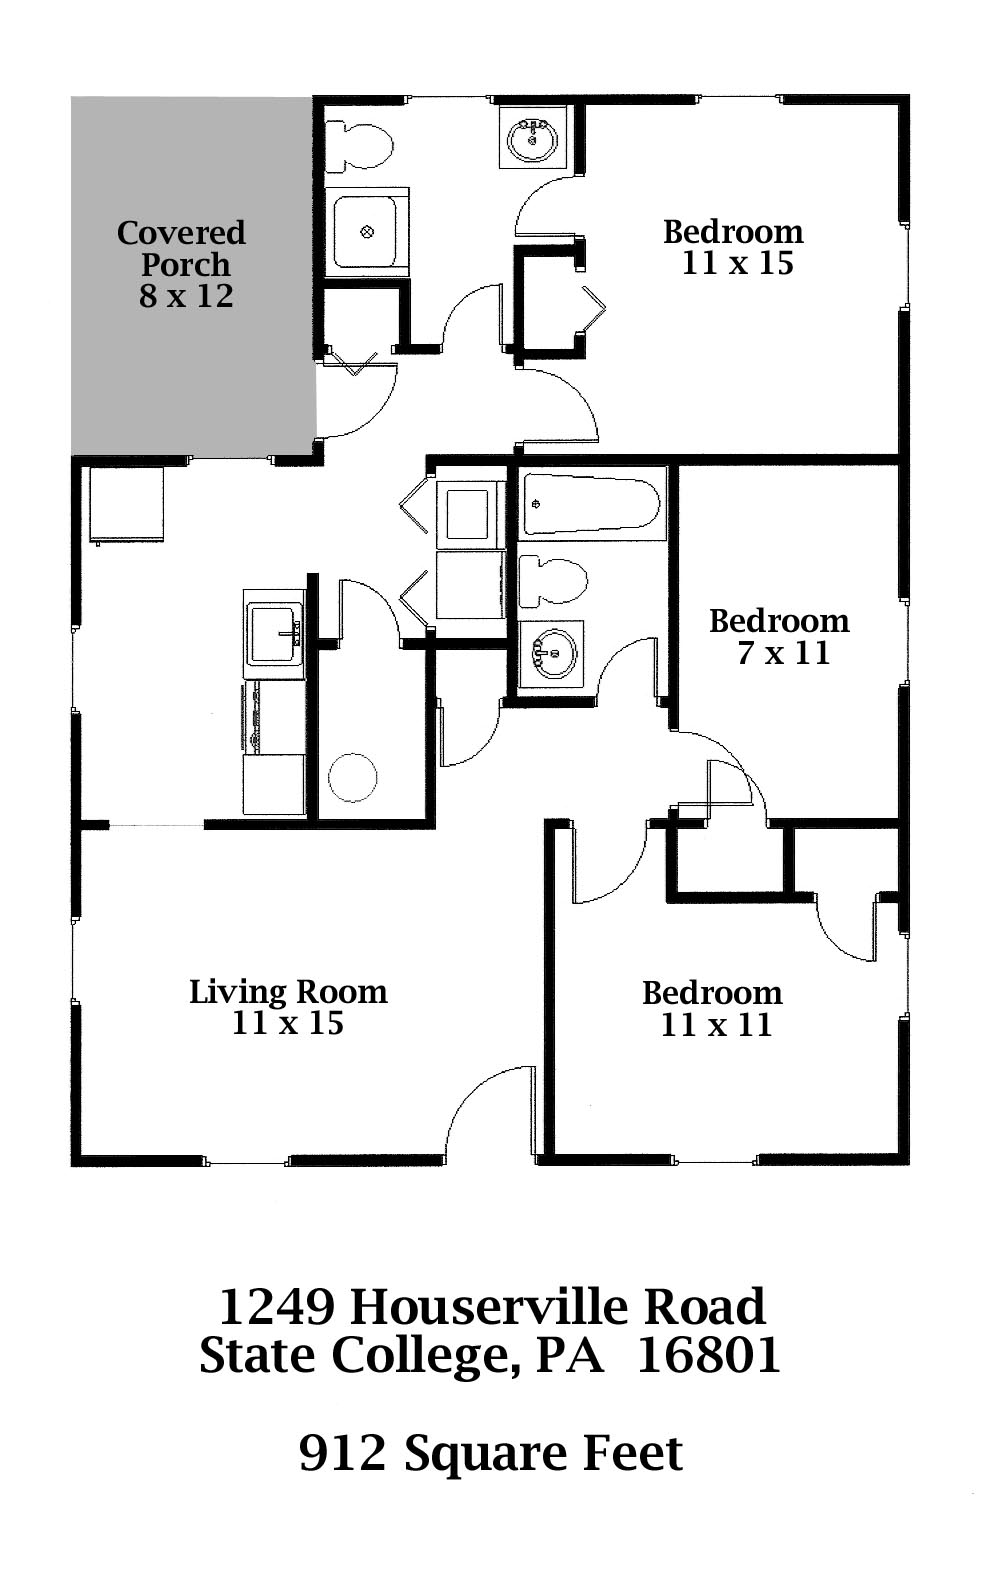 Floor plan of the small 3-bedroom house for rent at 1249 Houserville Road in State College PA